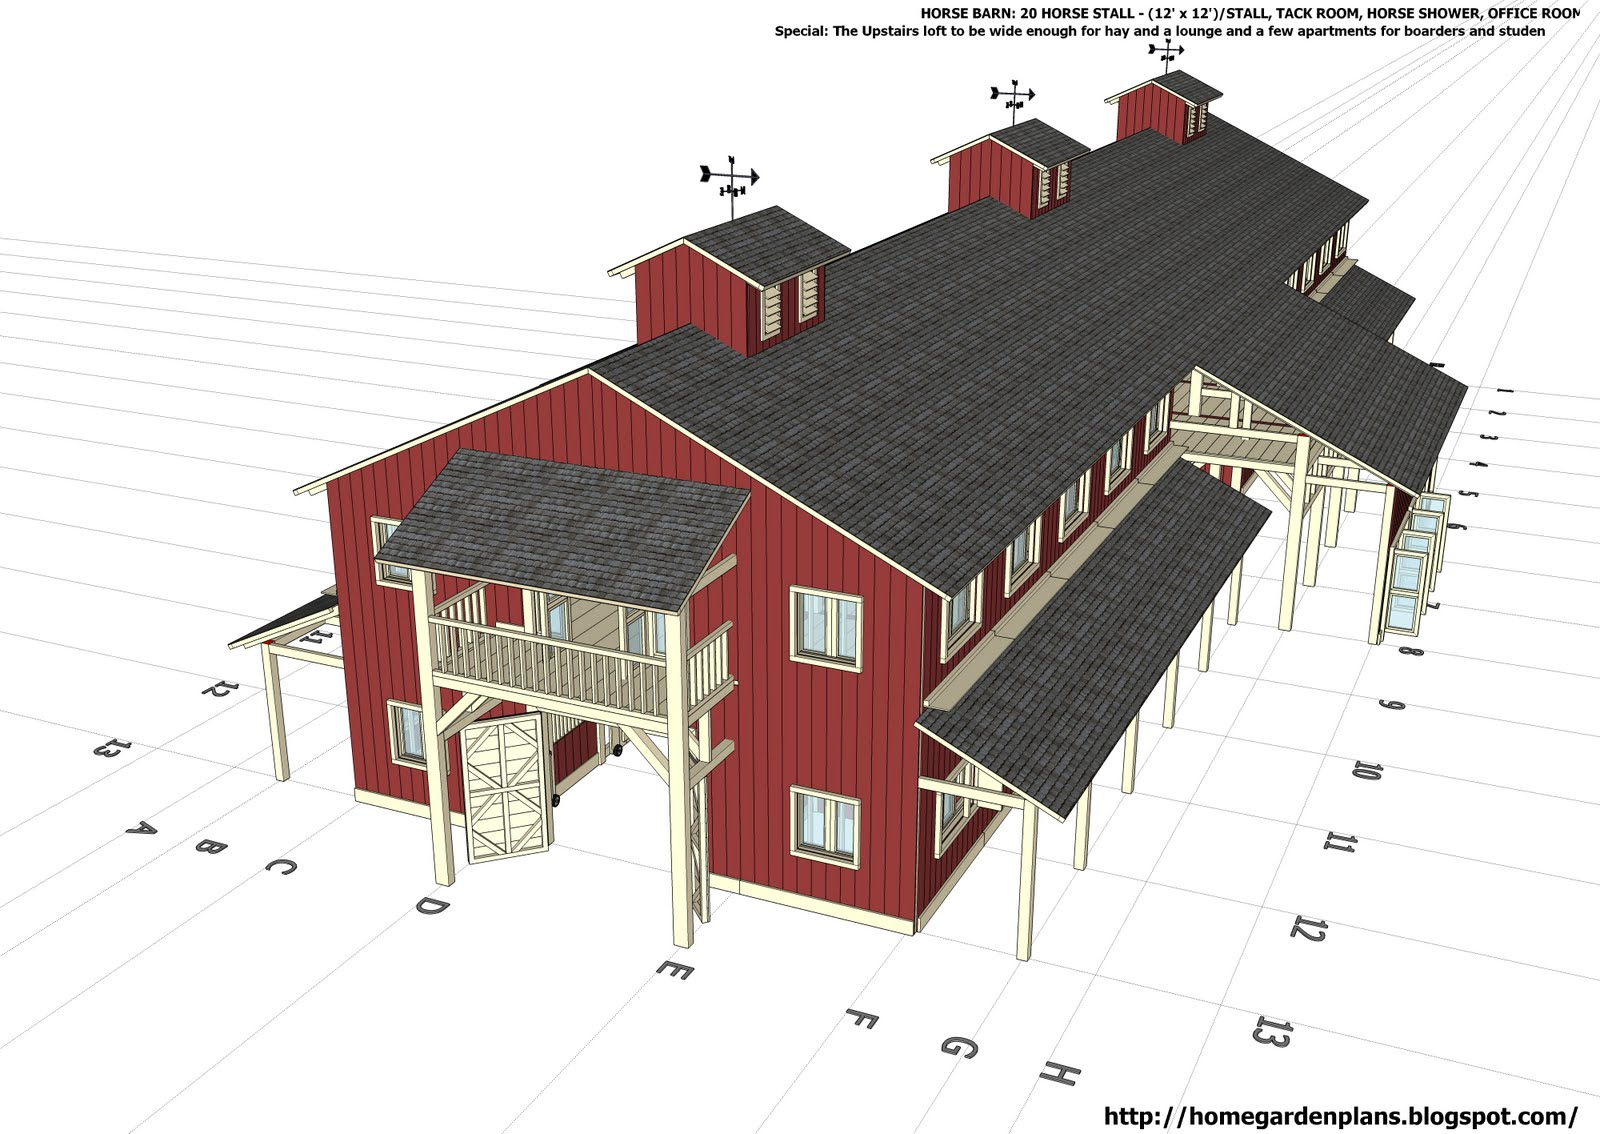 Curtis pdf plans free pole barn plans with loft for Pole building designs free